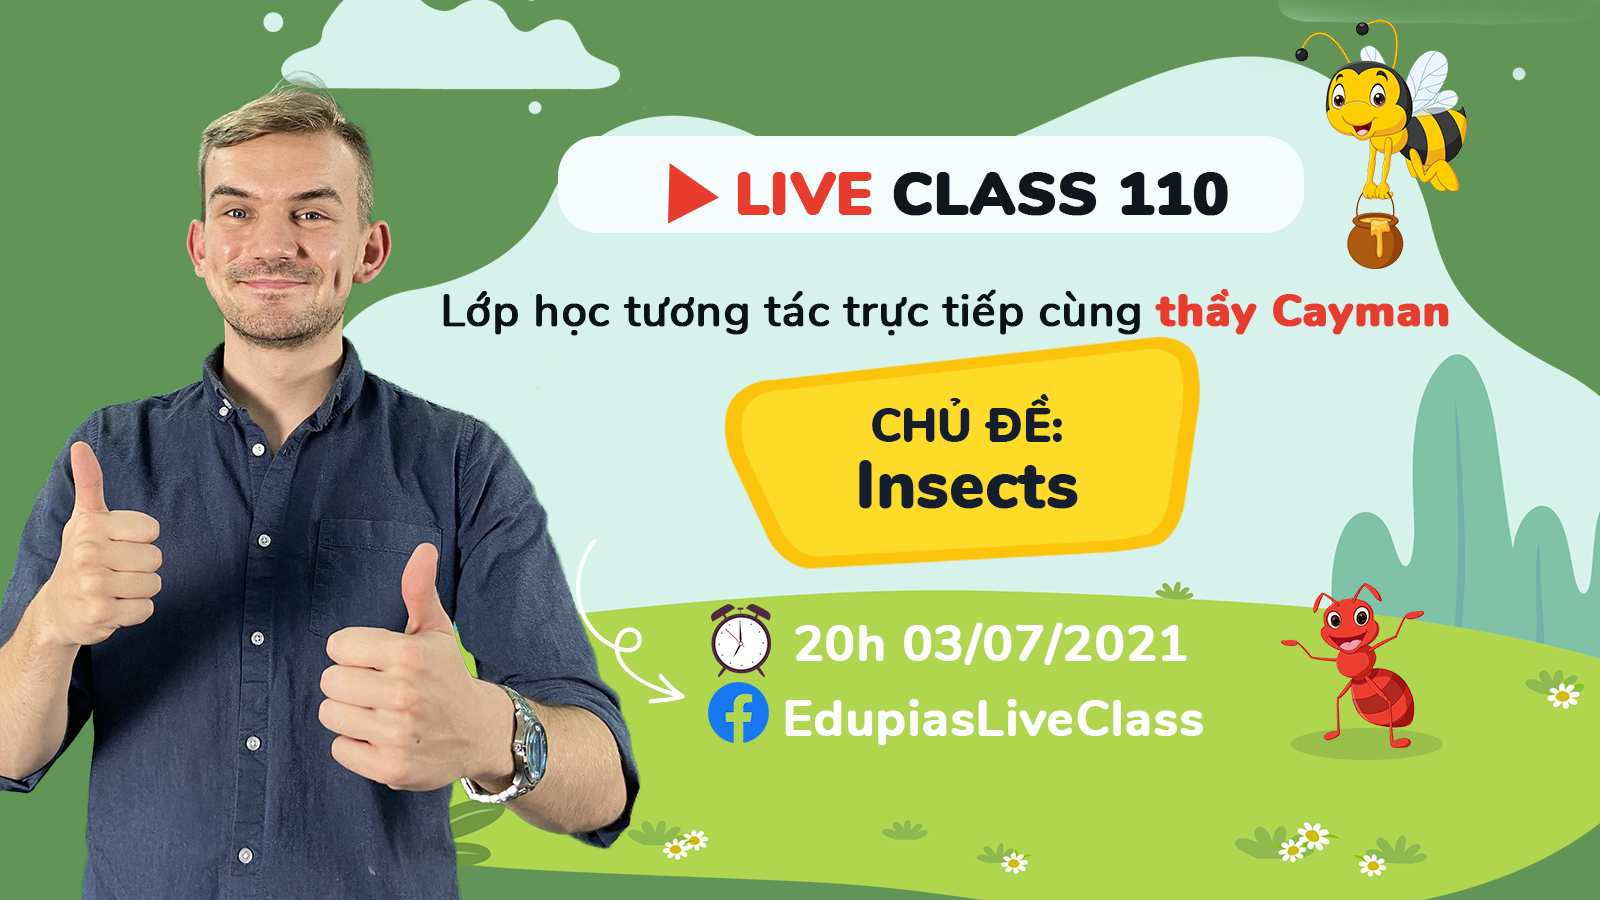 Live class tuần 110 - Chủ đề: Insects